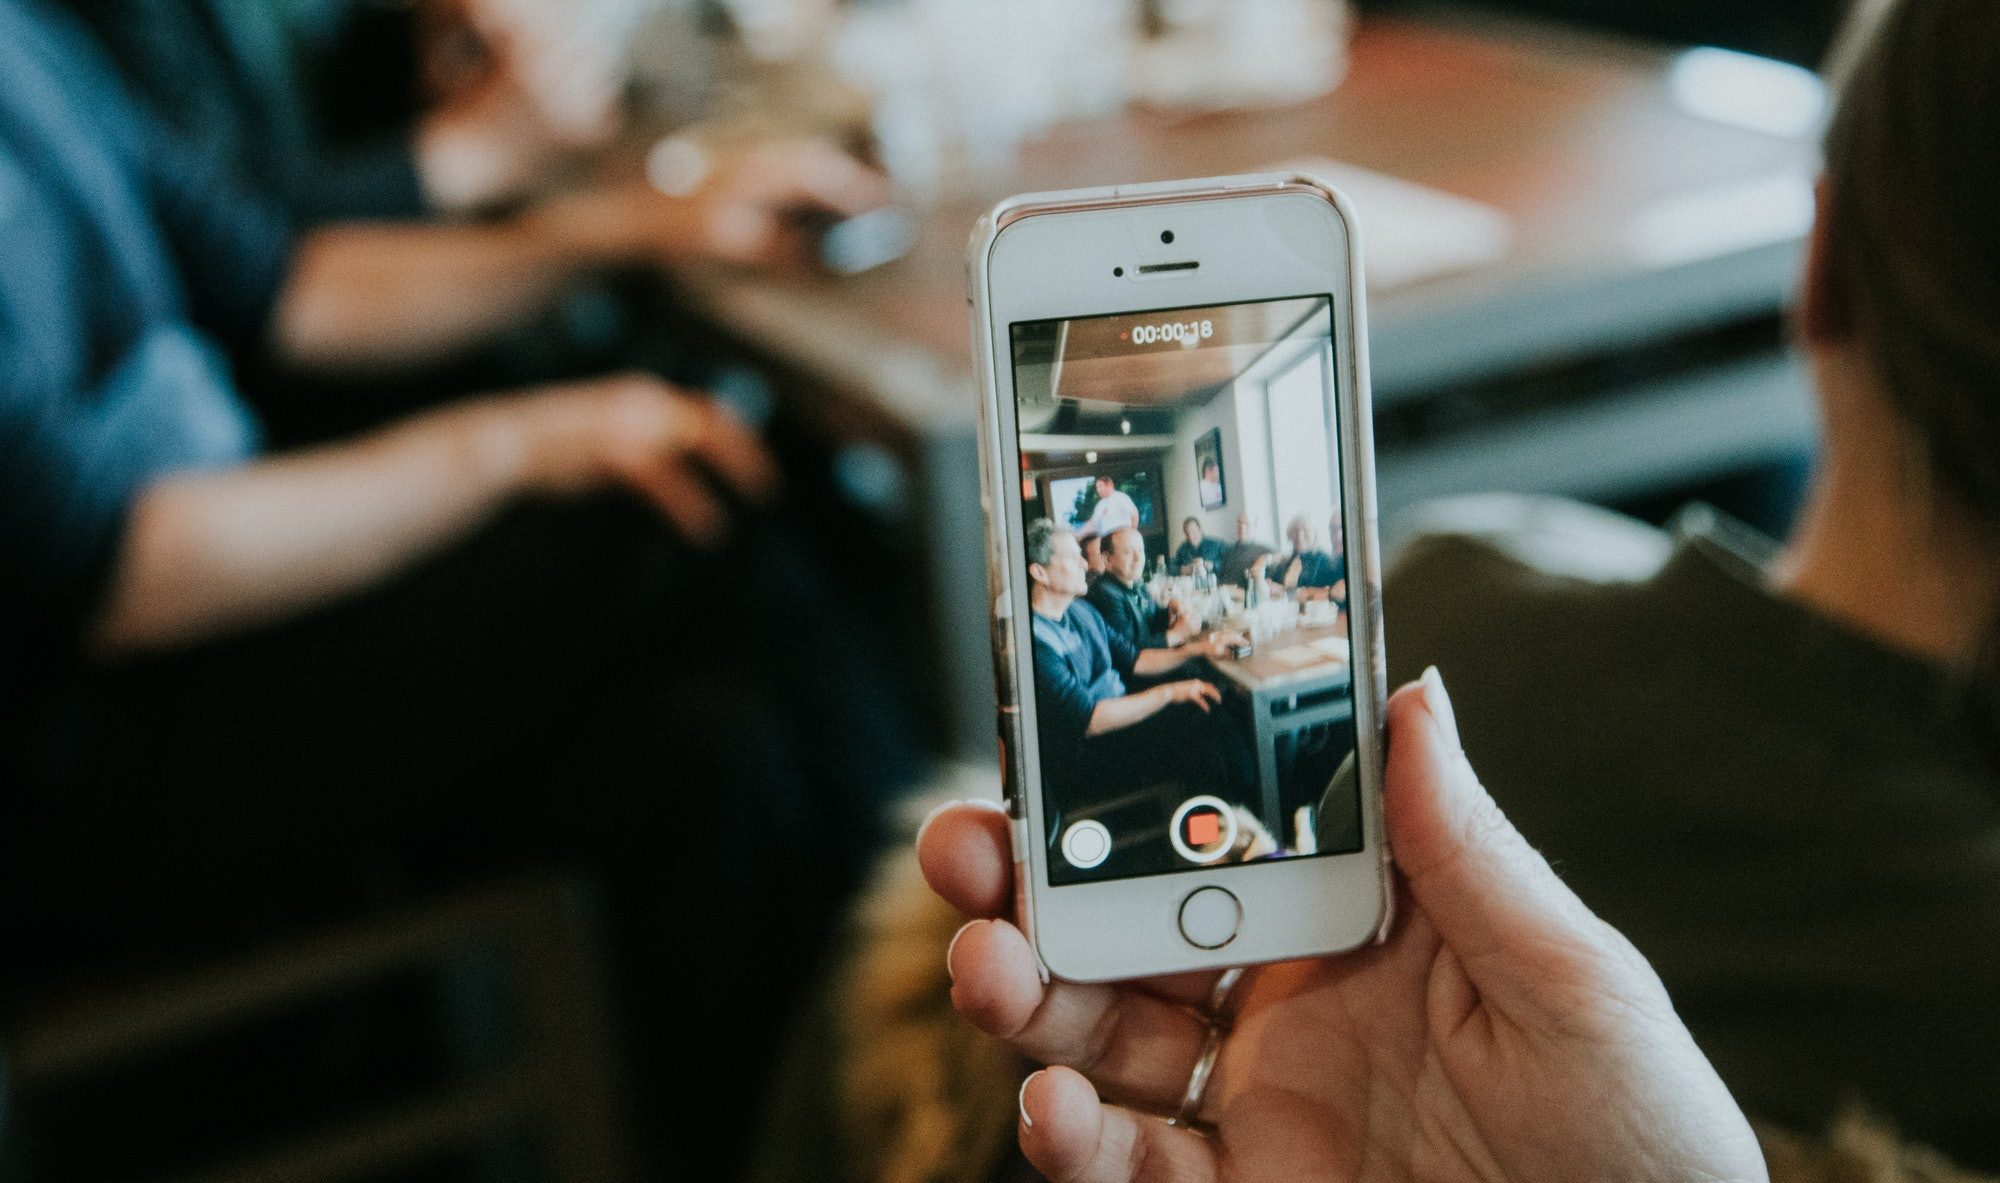 Group FaceTime may not work on your phone.